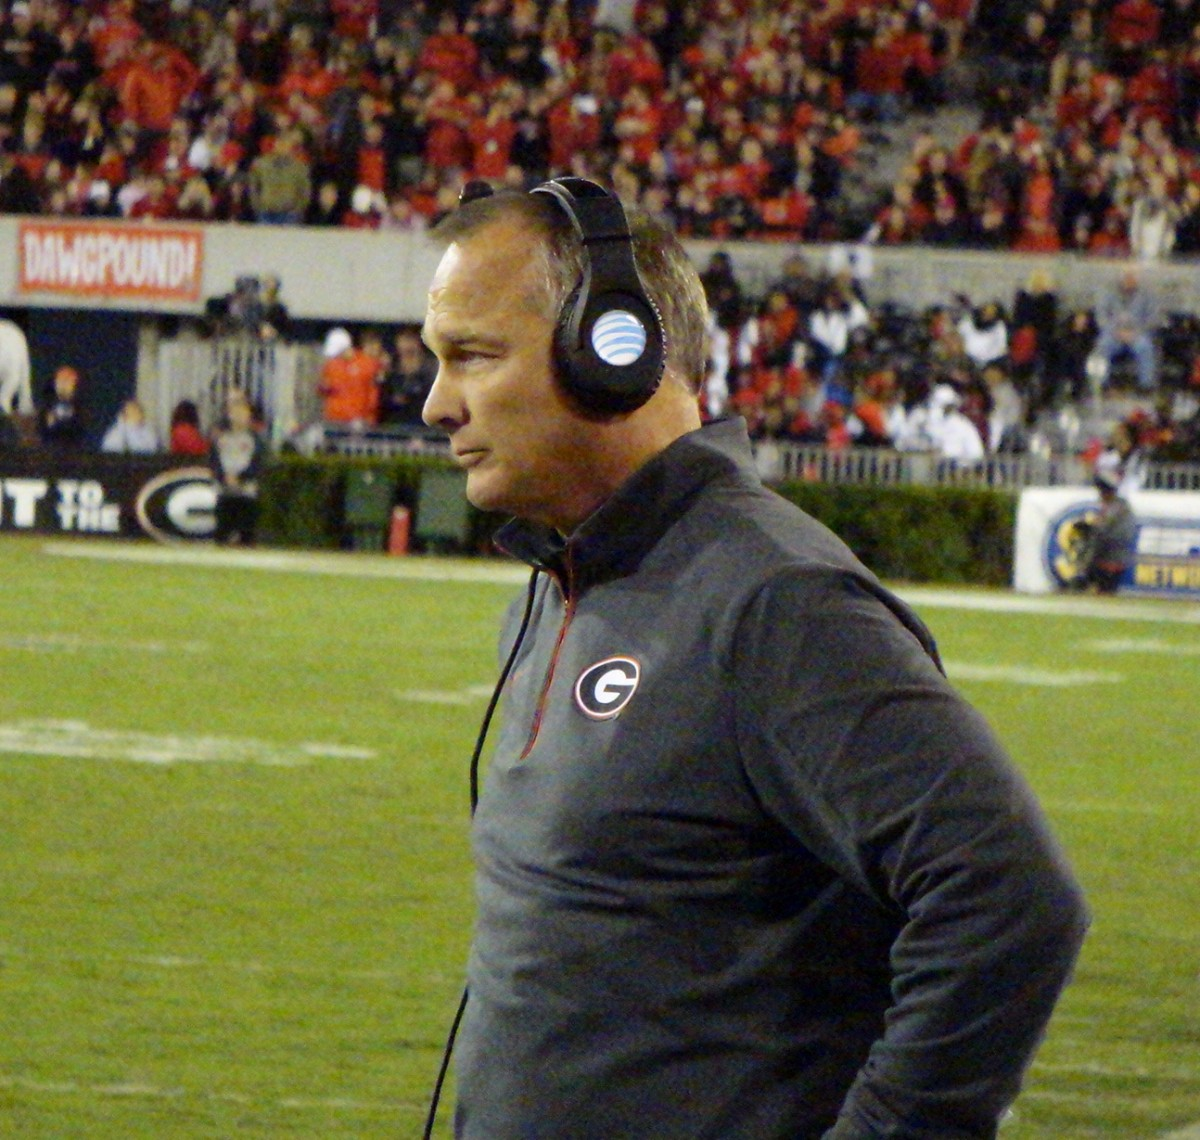 Mark Richt watches intently during the Missouri game.